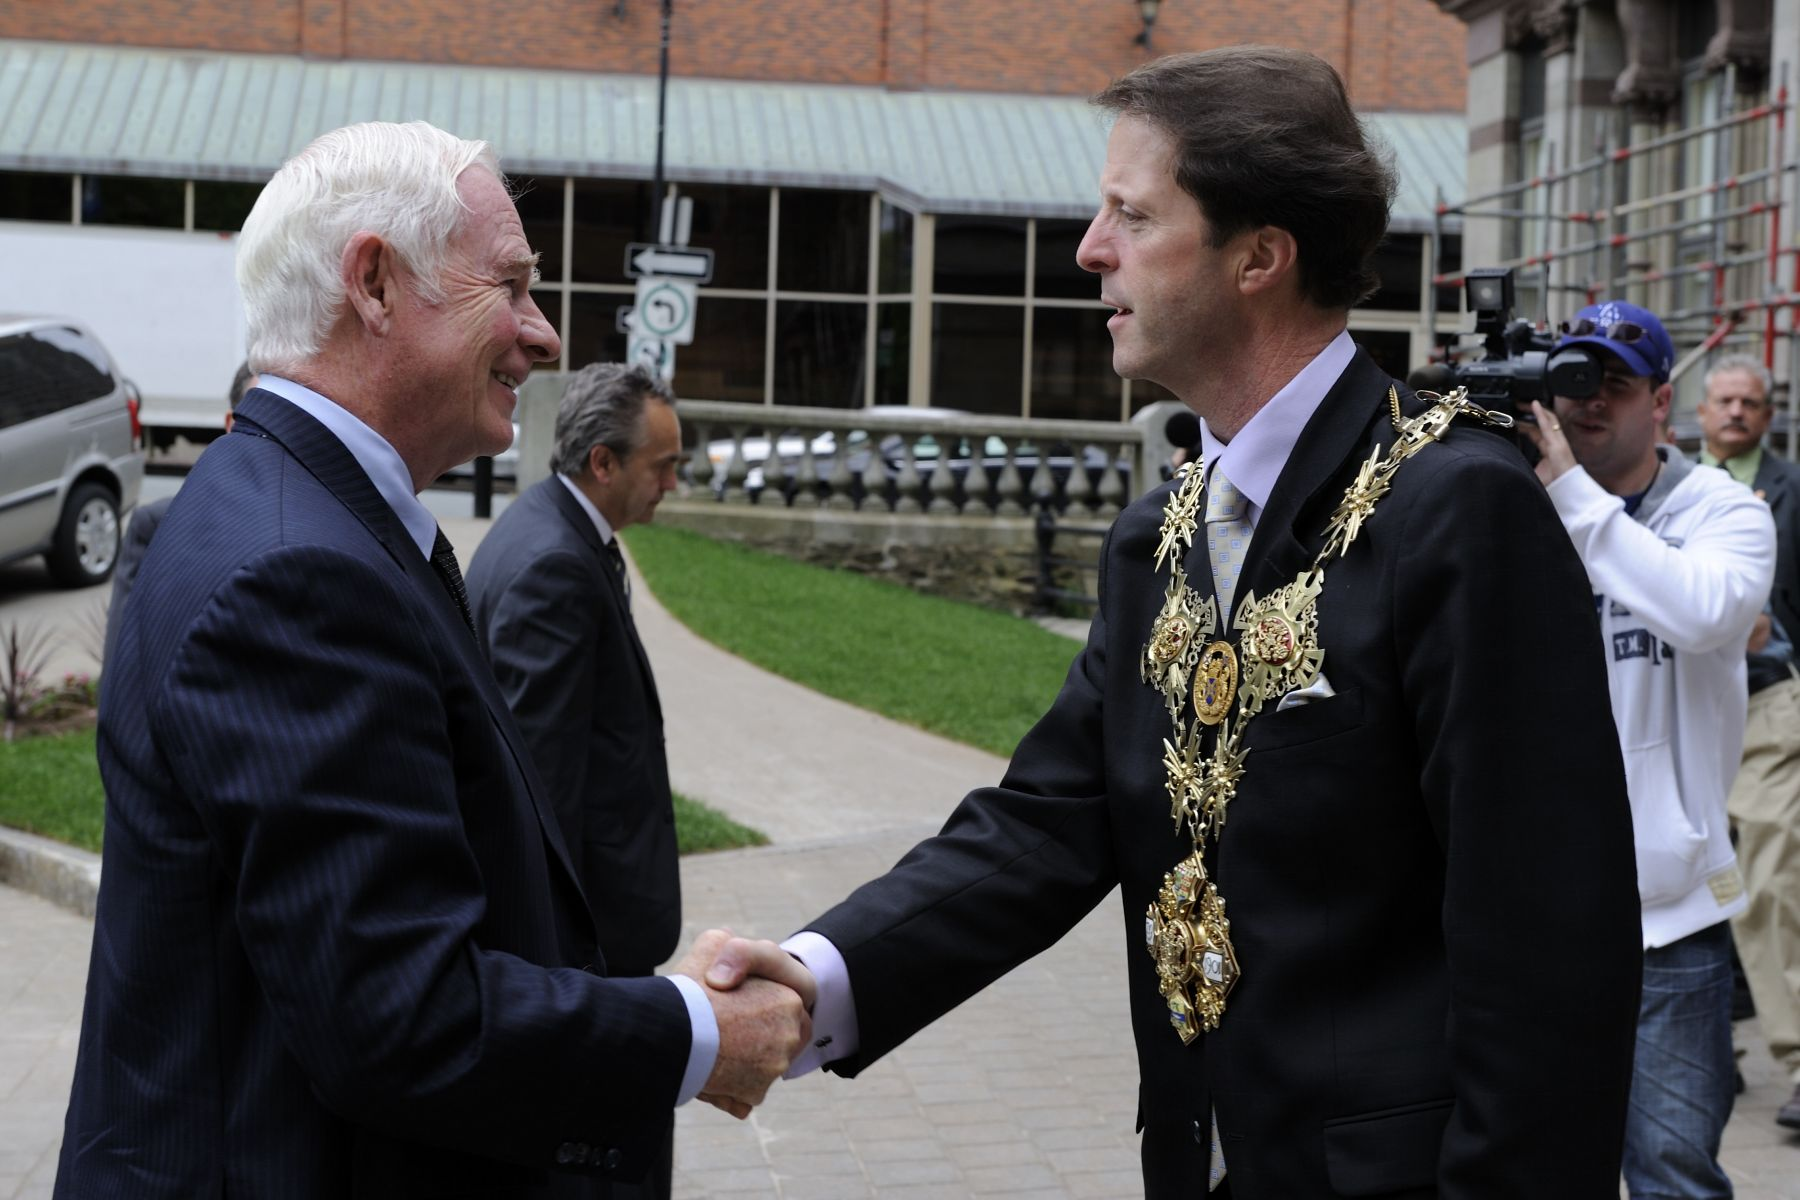 Upon his arrival at City Hall, His Excellency the Right Honourable David Johnston, Governor General of Canada, was greeted by His Worship Peter Kelly, Mayor of Halifax Regional Municipality.